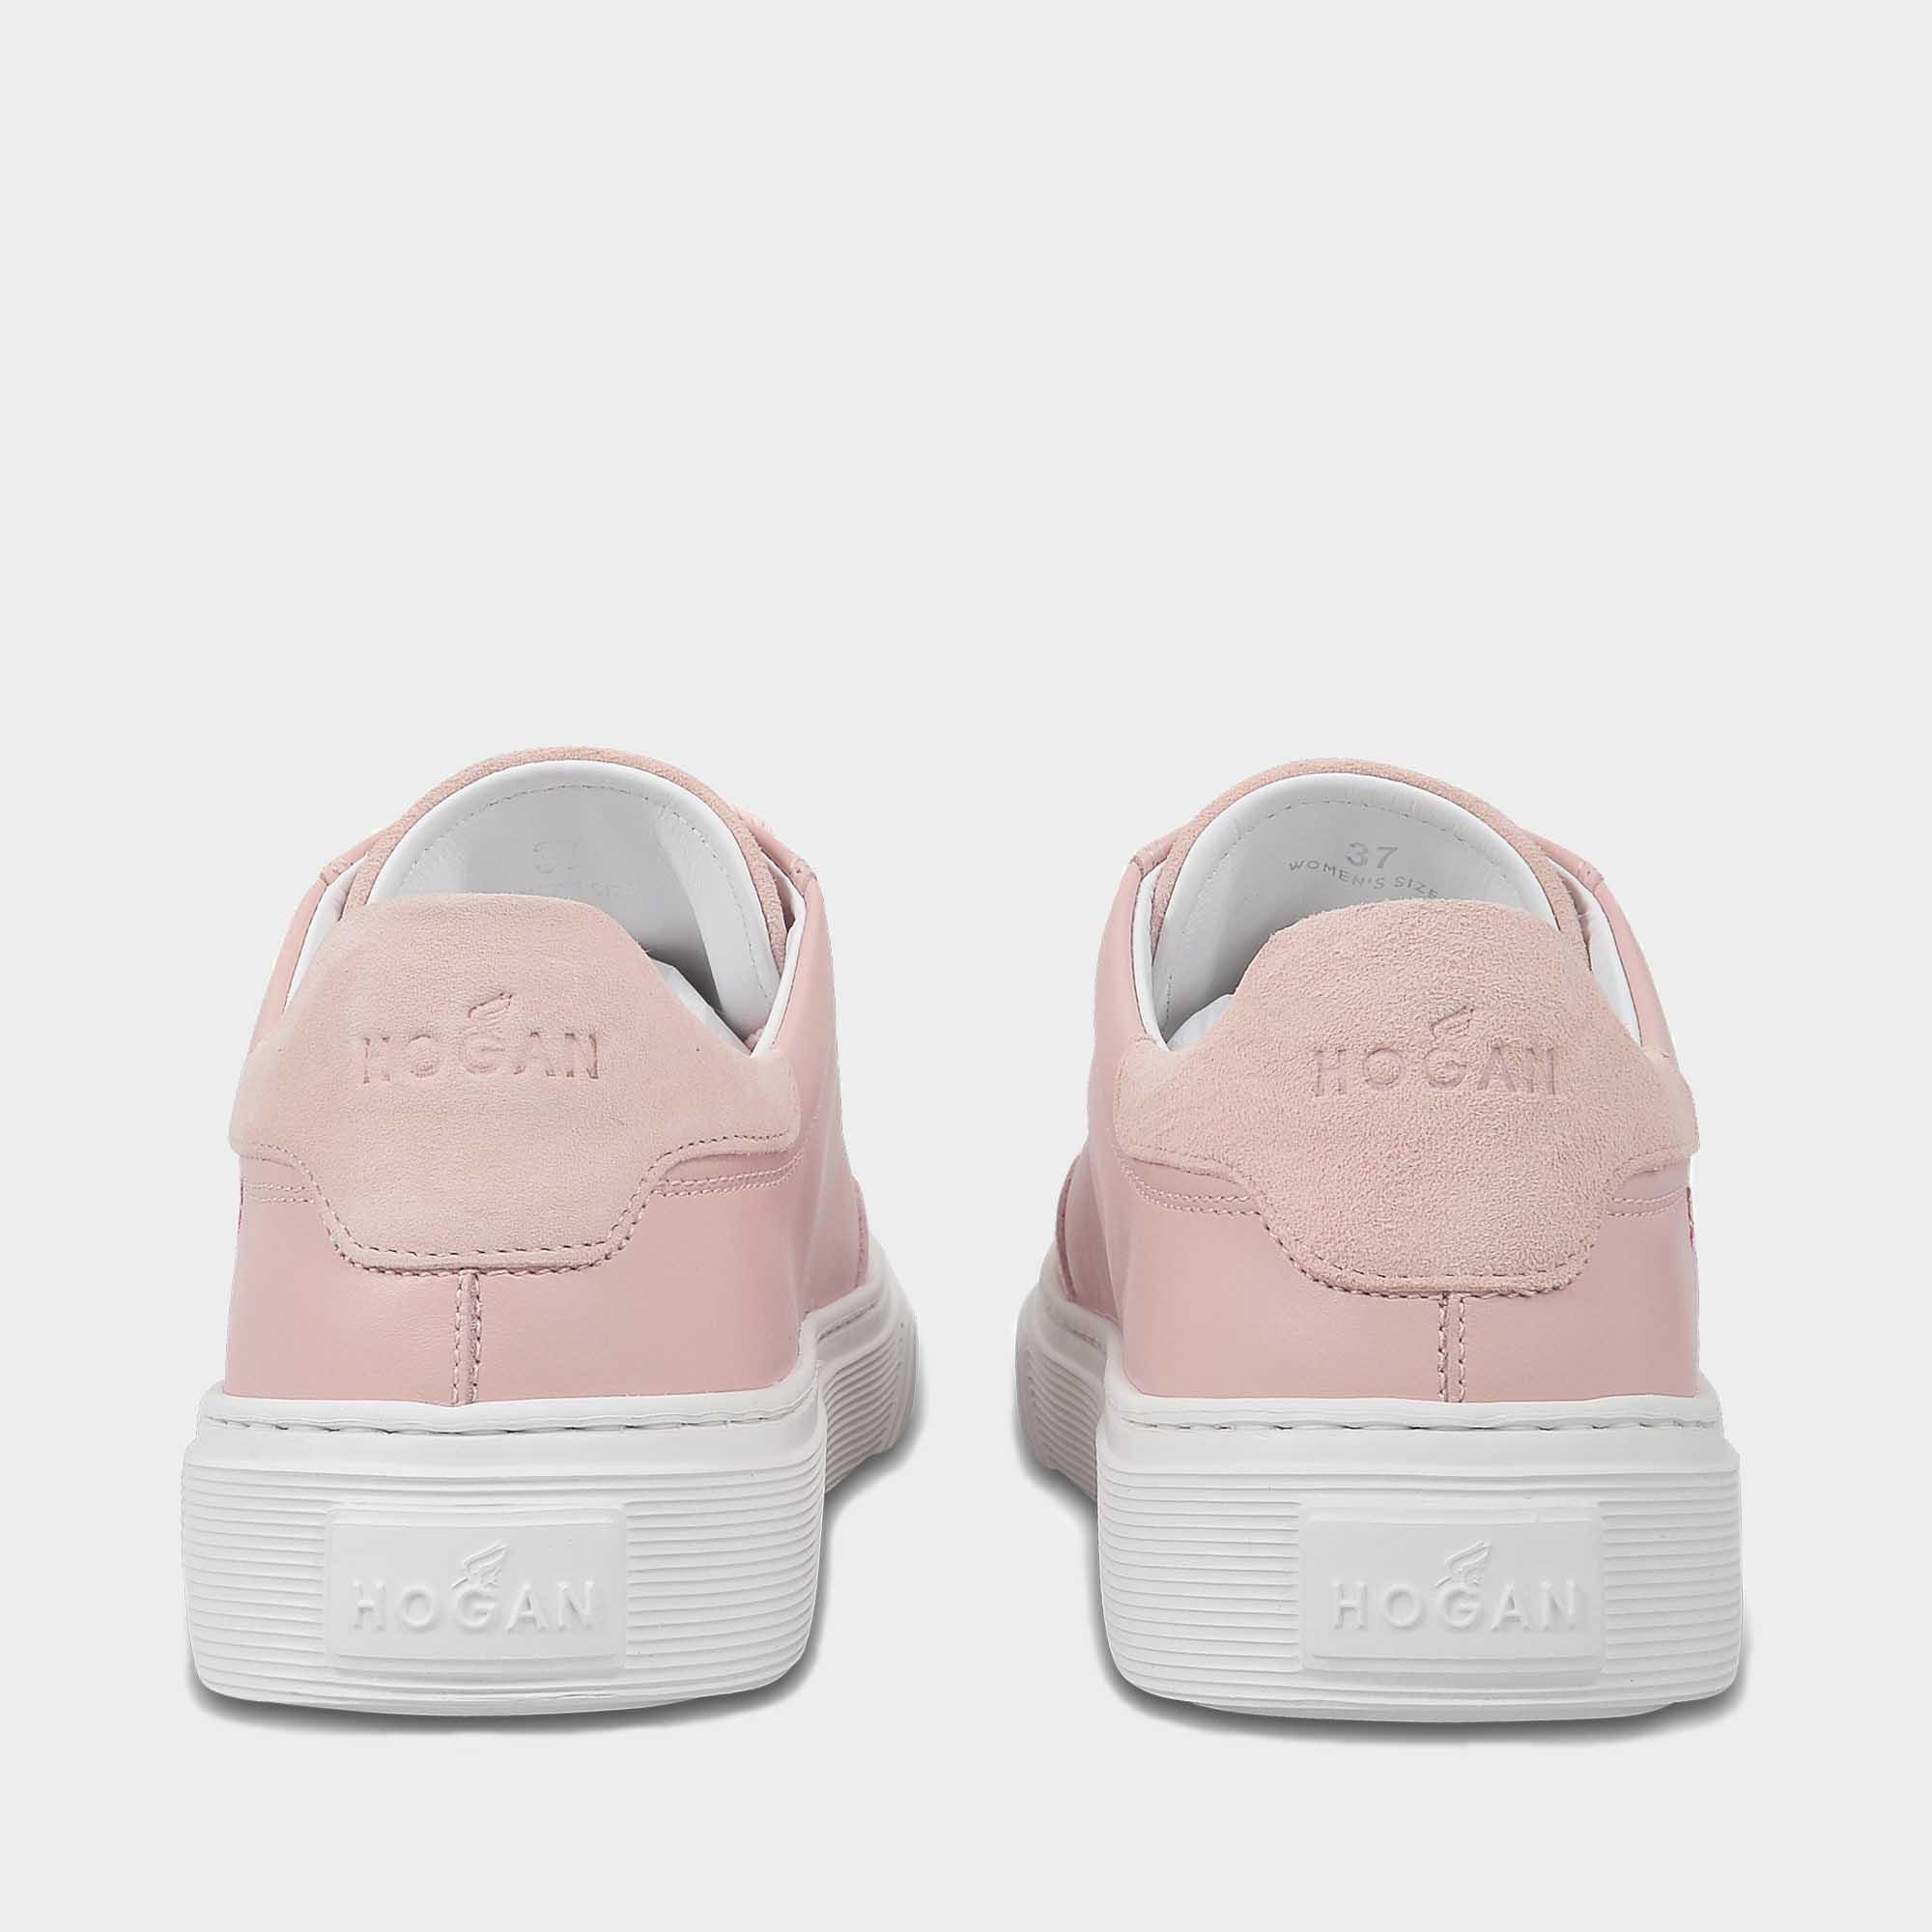 H258 Traditonal Suede Sneakers in Pink Leather Hogan o14SrADDfP